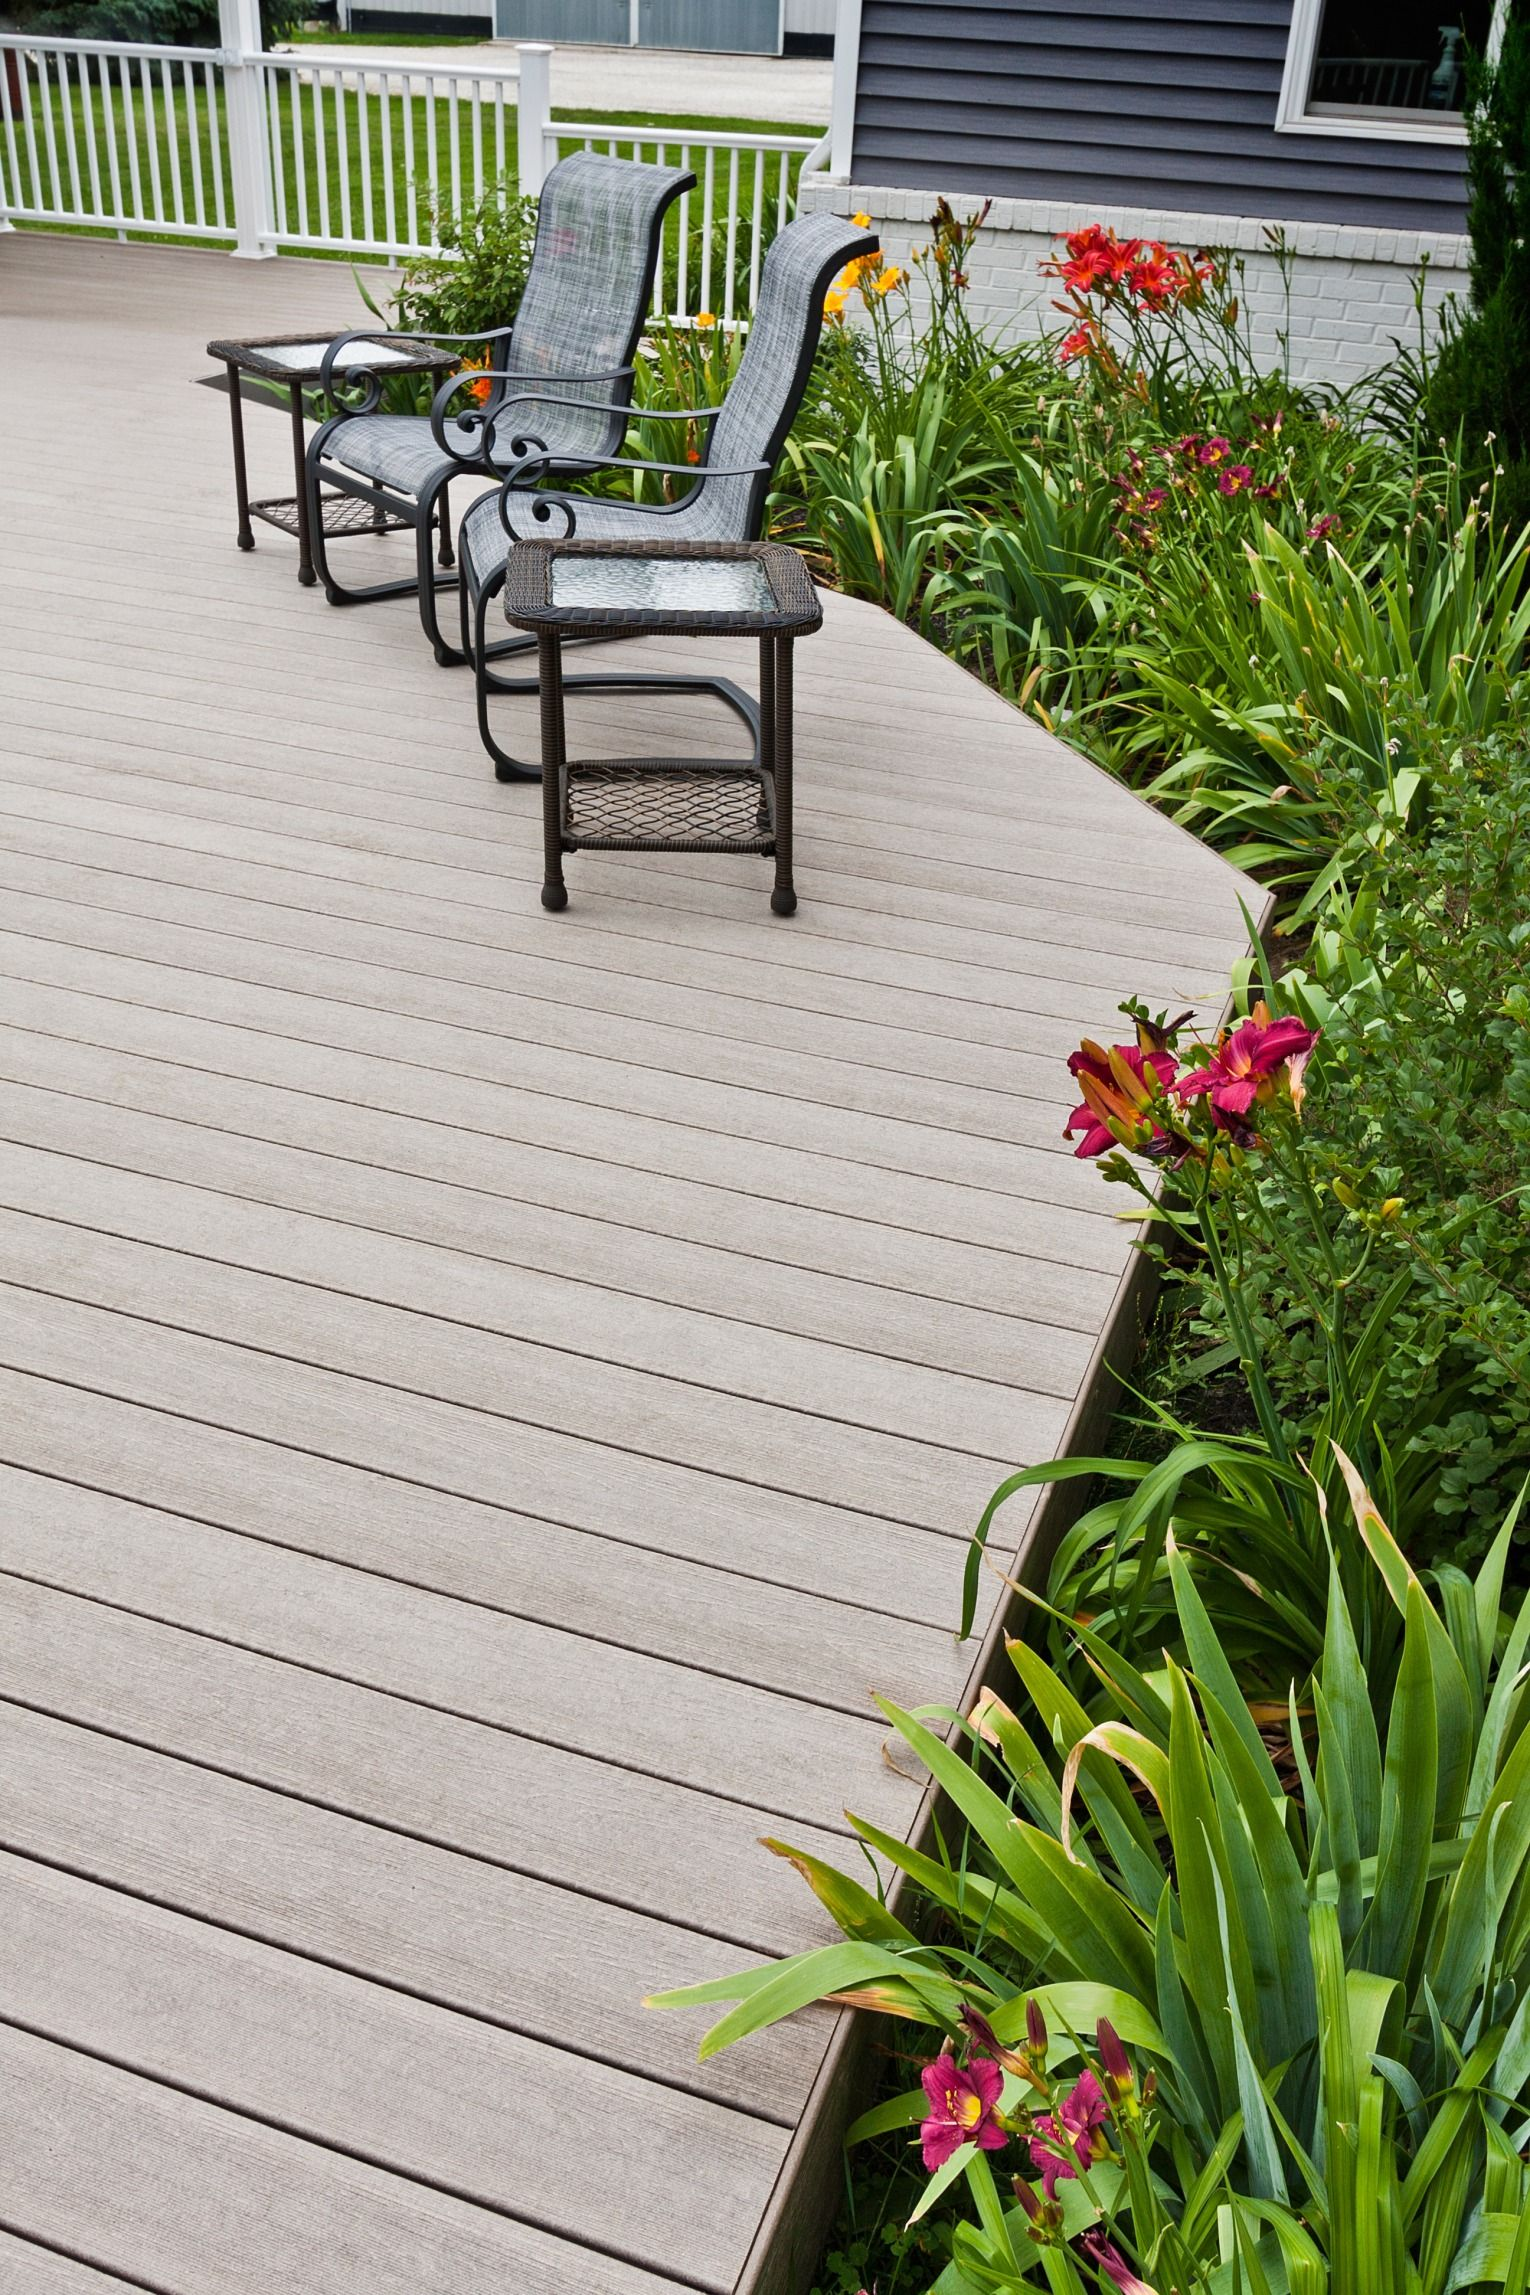 UltraDeck® Composite Decking offers highquality